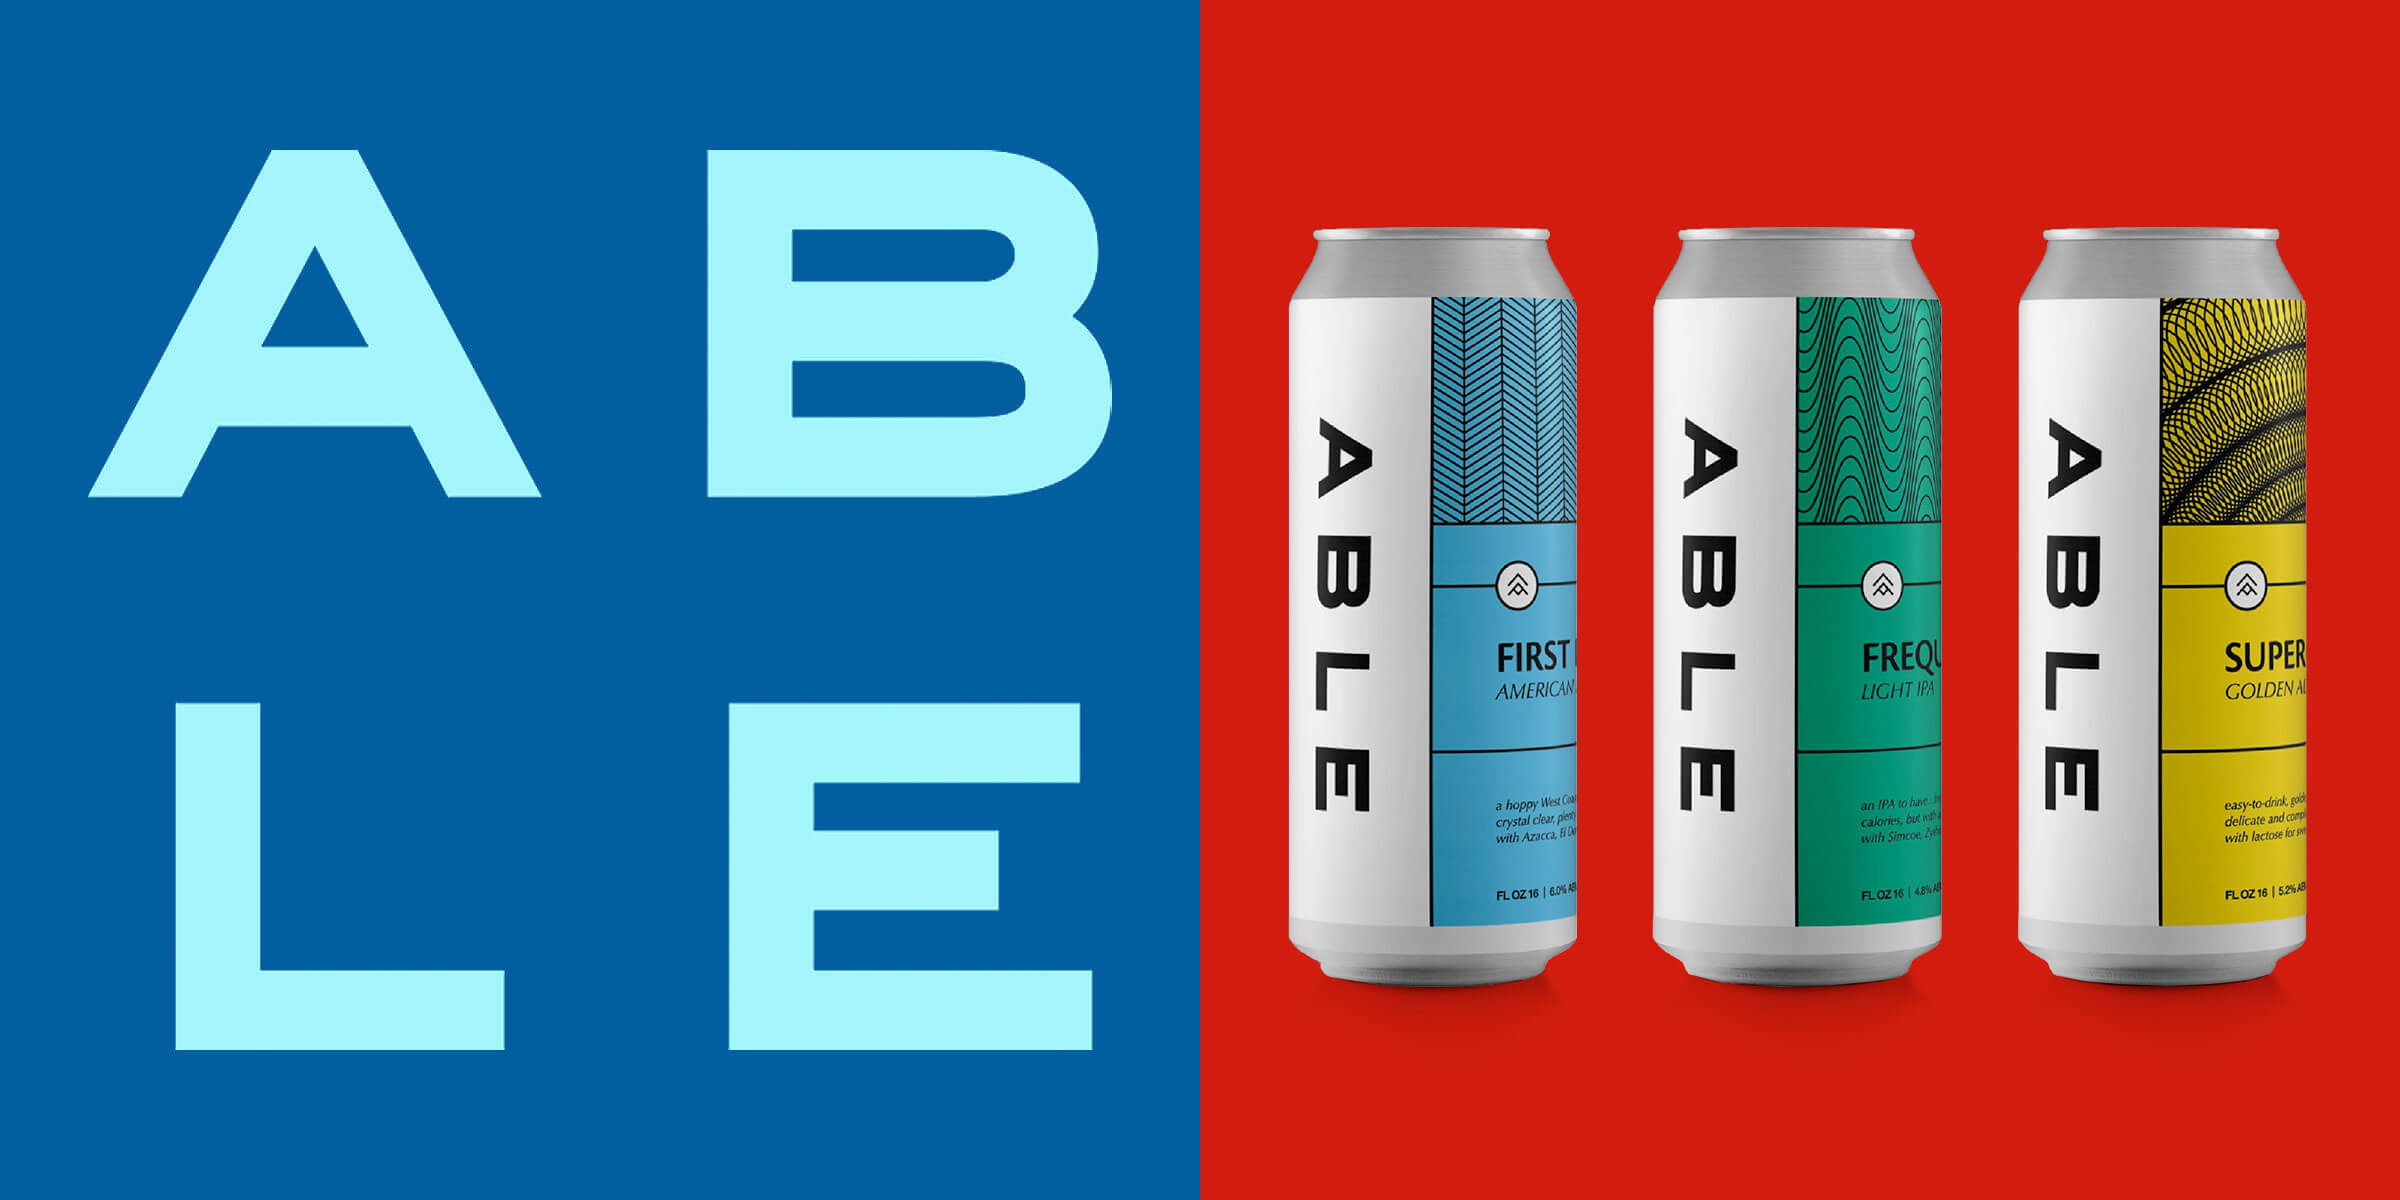 Able Seedhouse + Brewery released their trusty flagships First Light and Supergiant in 16 oz. cans alongside their newest brew: Frequency, a Session IPA.